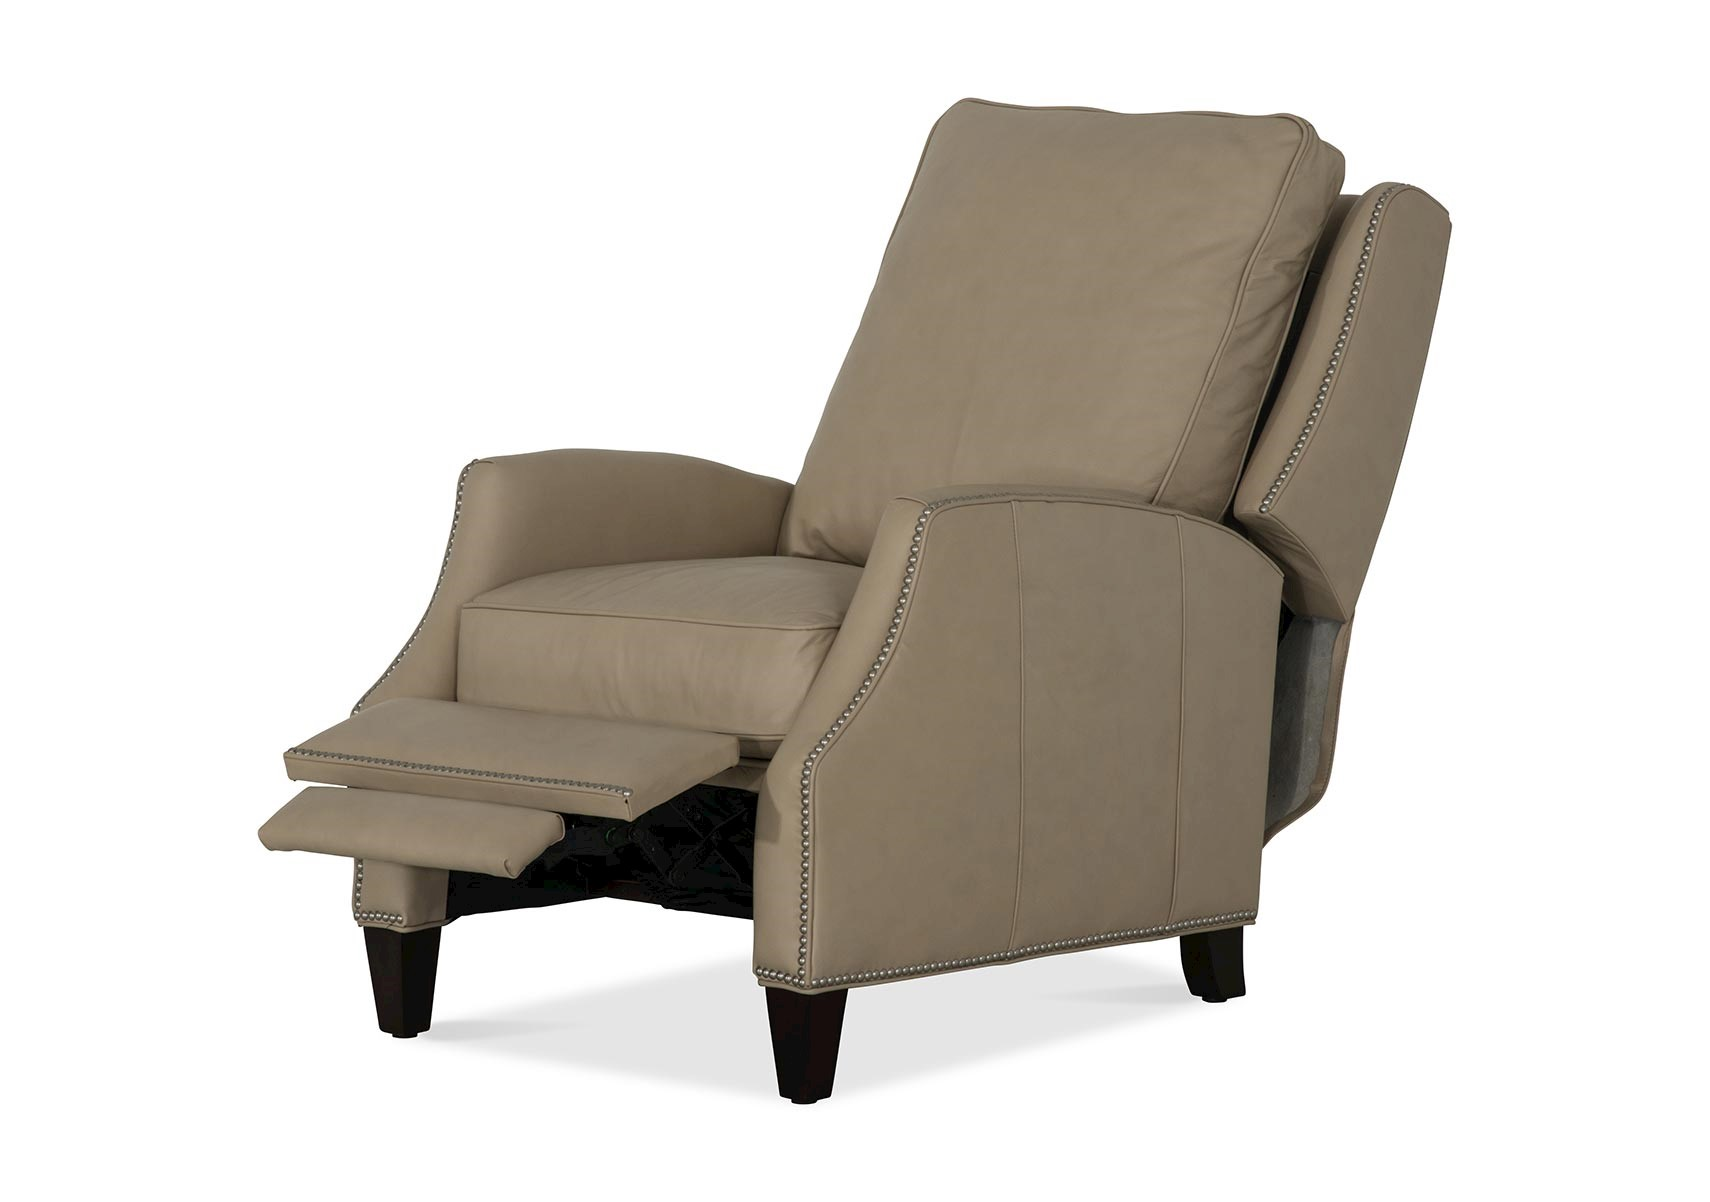 X  sc 1 st  Lacks & Lacks | Kerley Palomino Push-Back All-Leather Recliner islam-shia.org